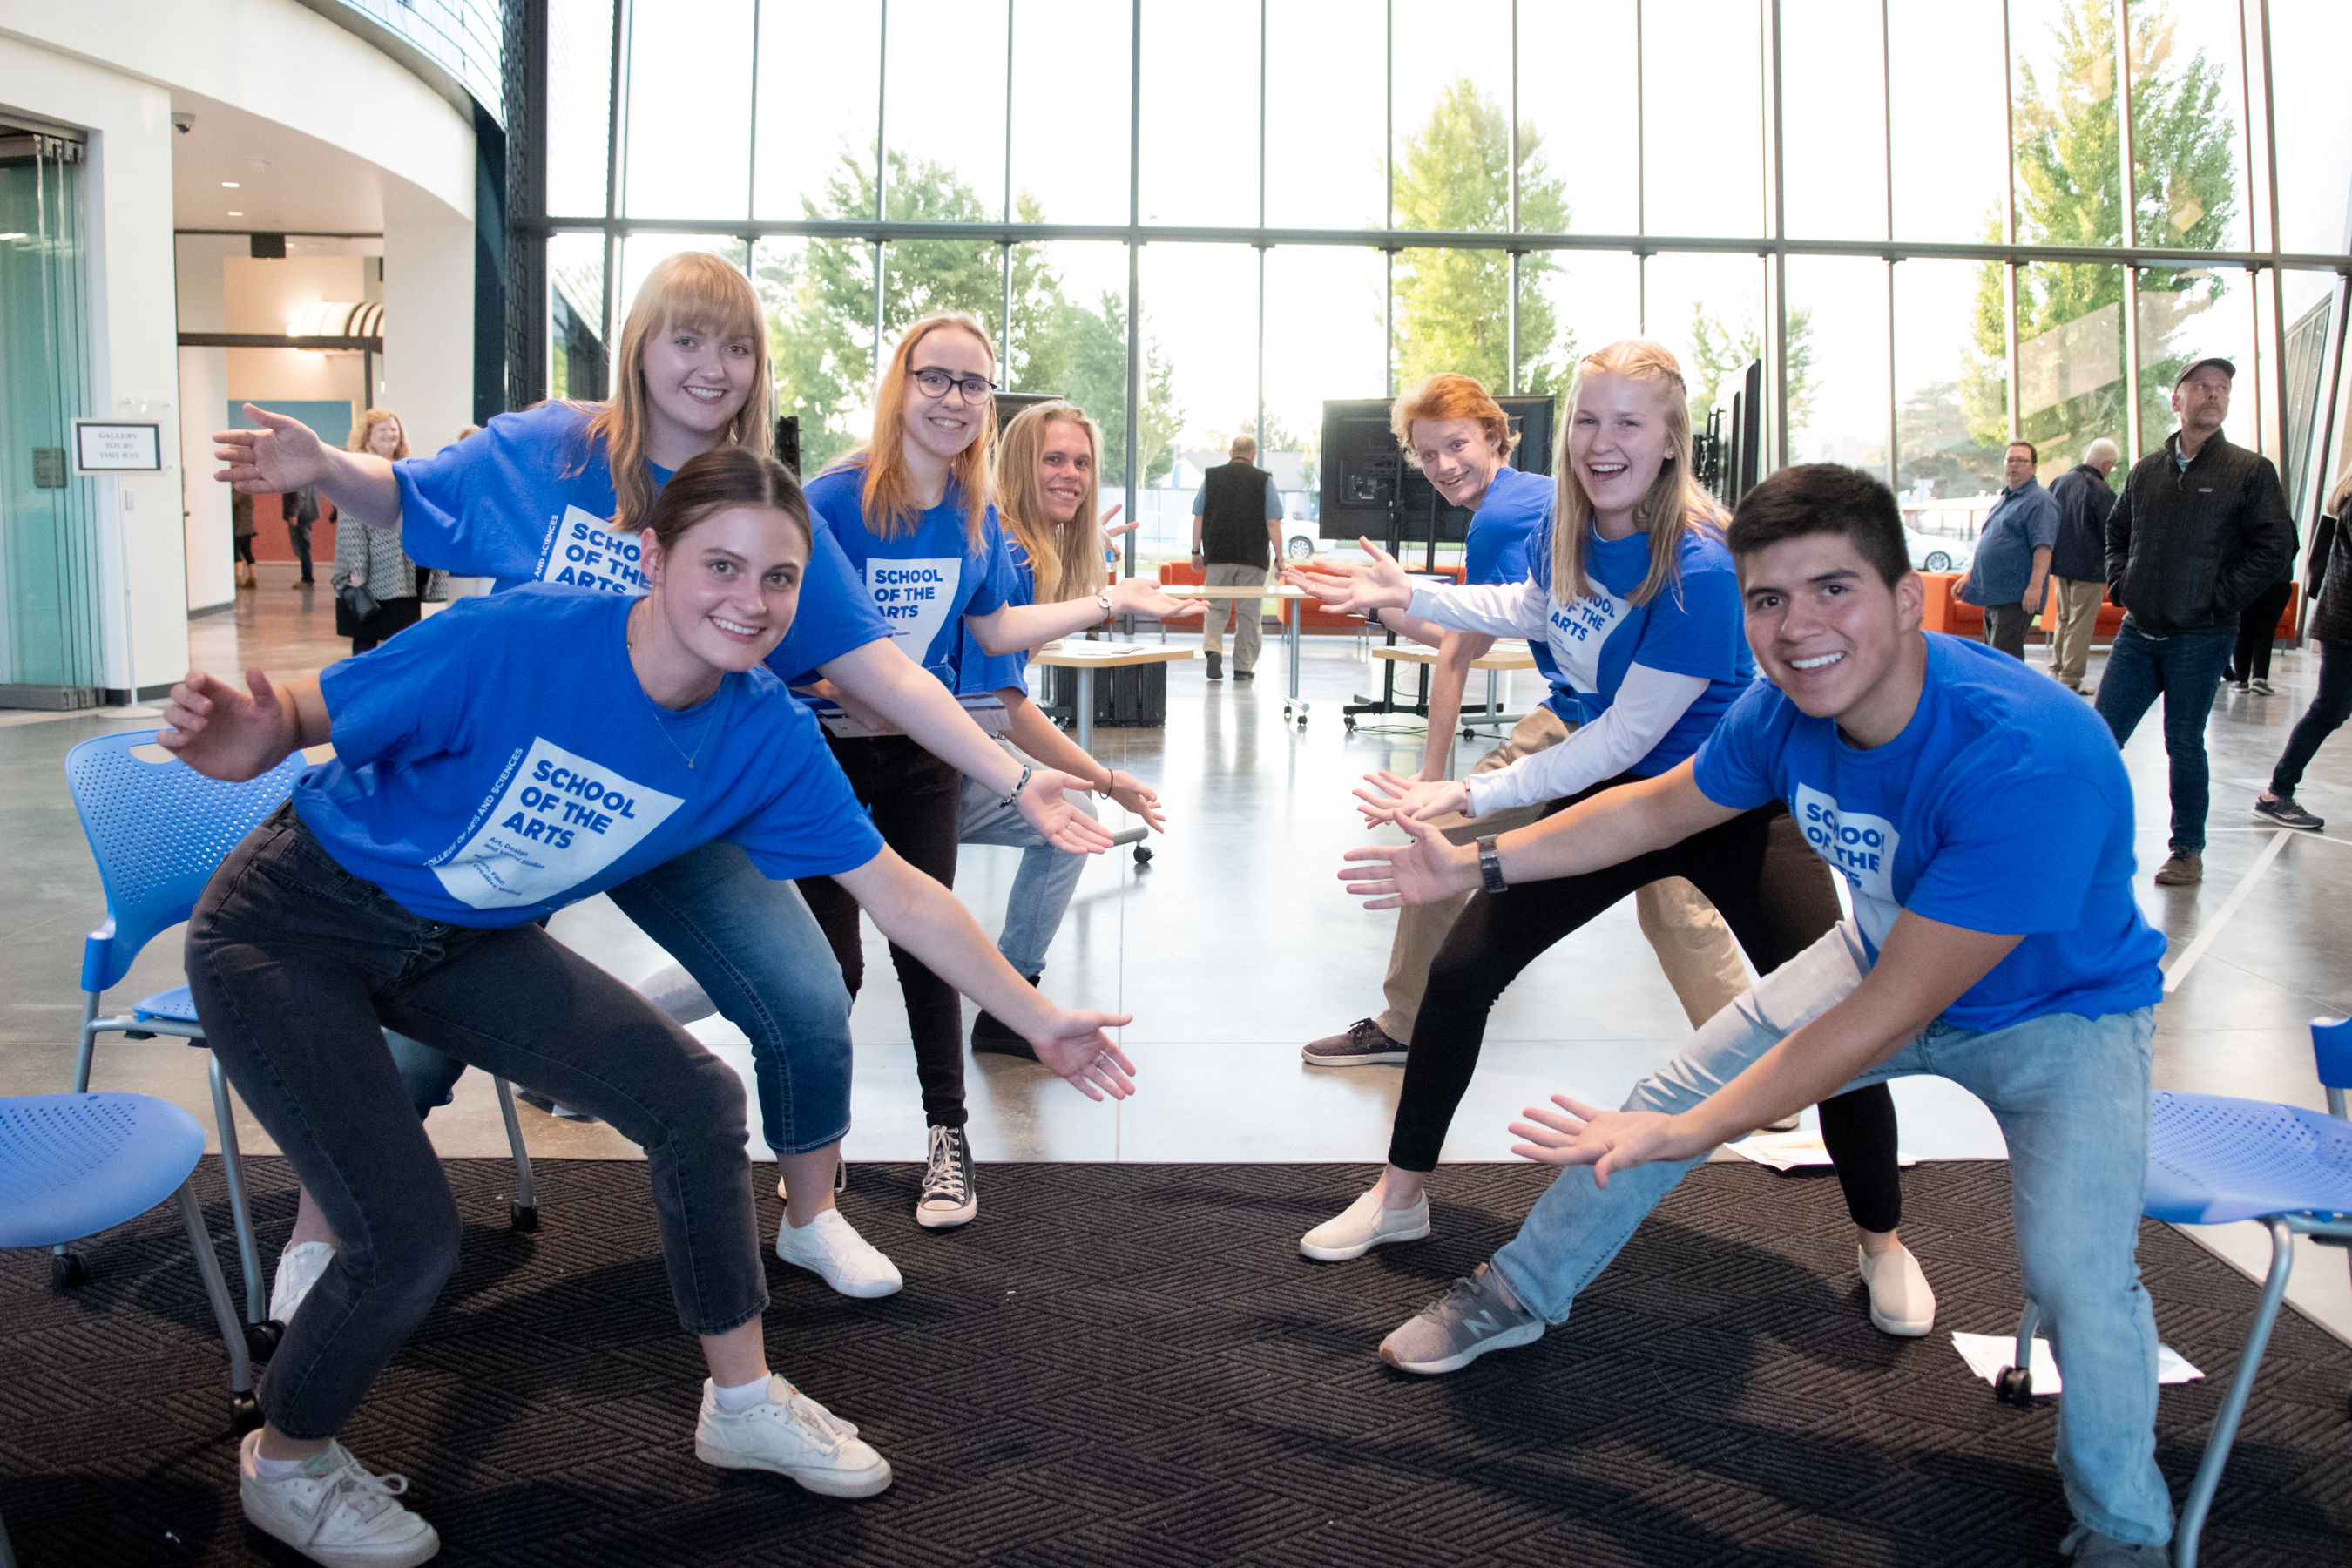 School of the Arts students pose in matching t-shirts